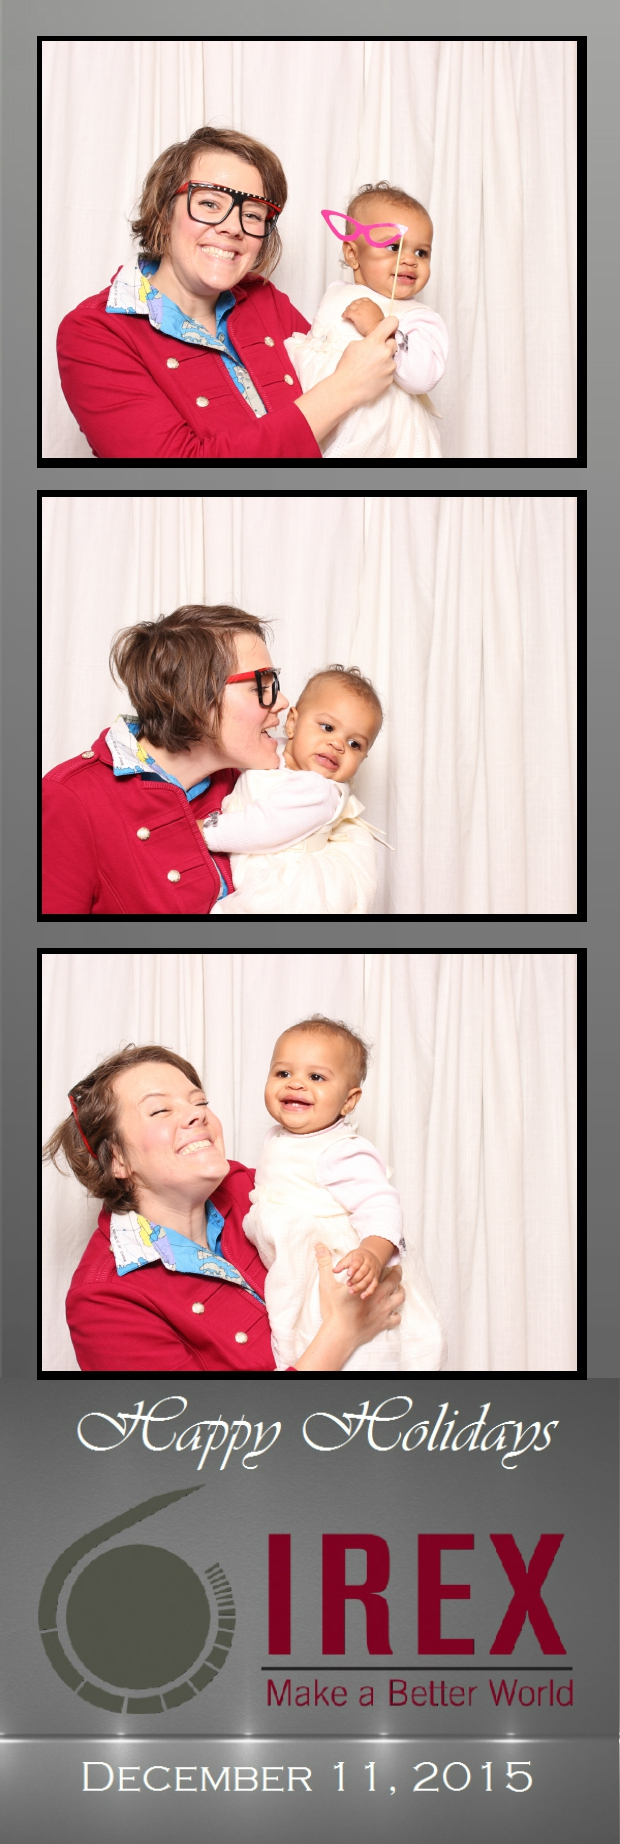 Guest House Events Photo Booth Strips IREX (10).jpg